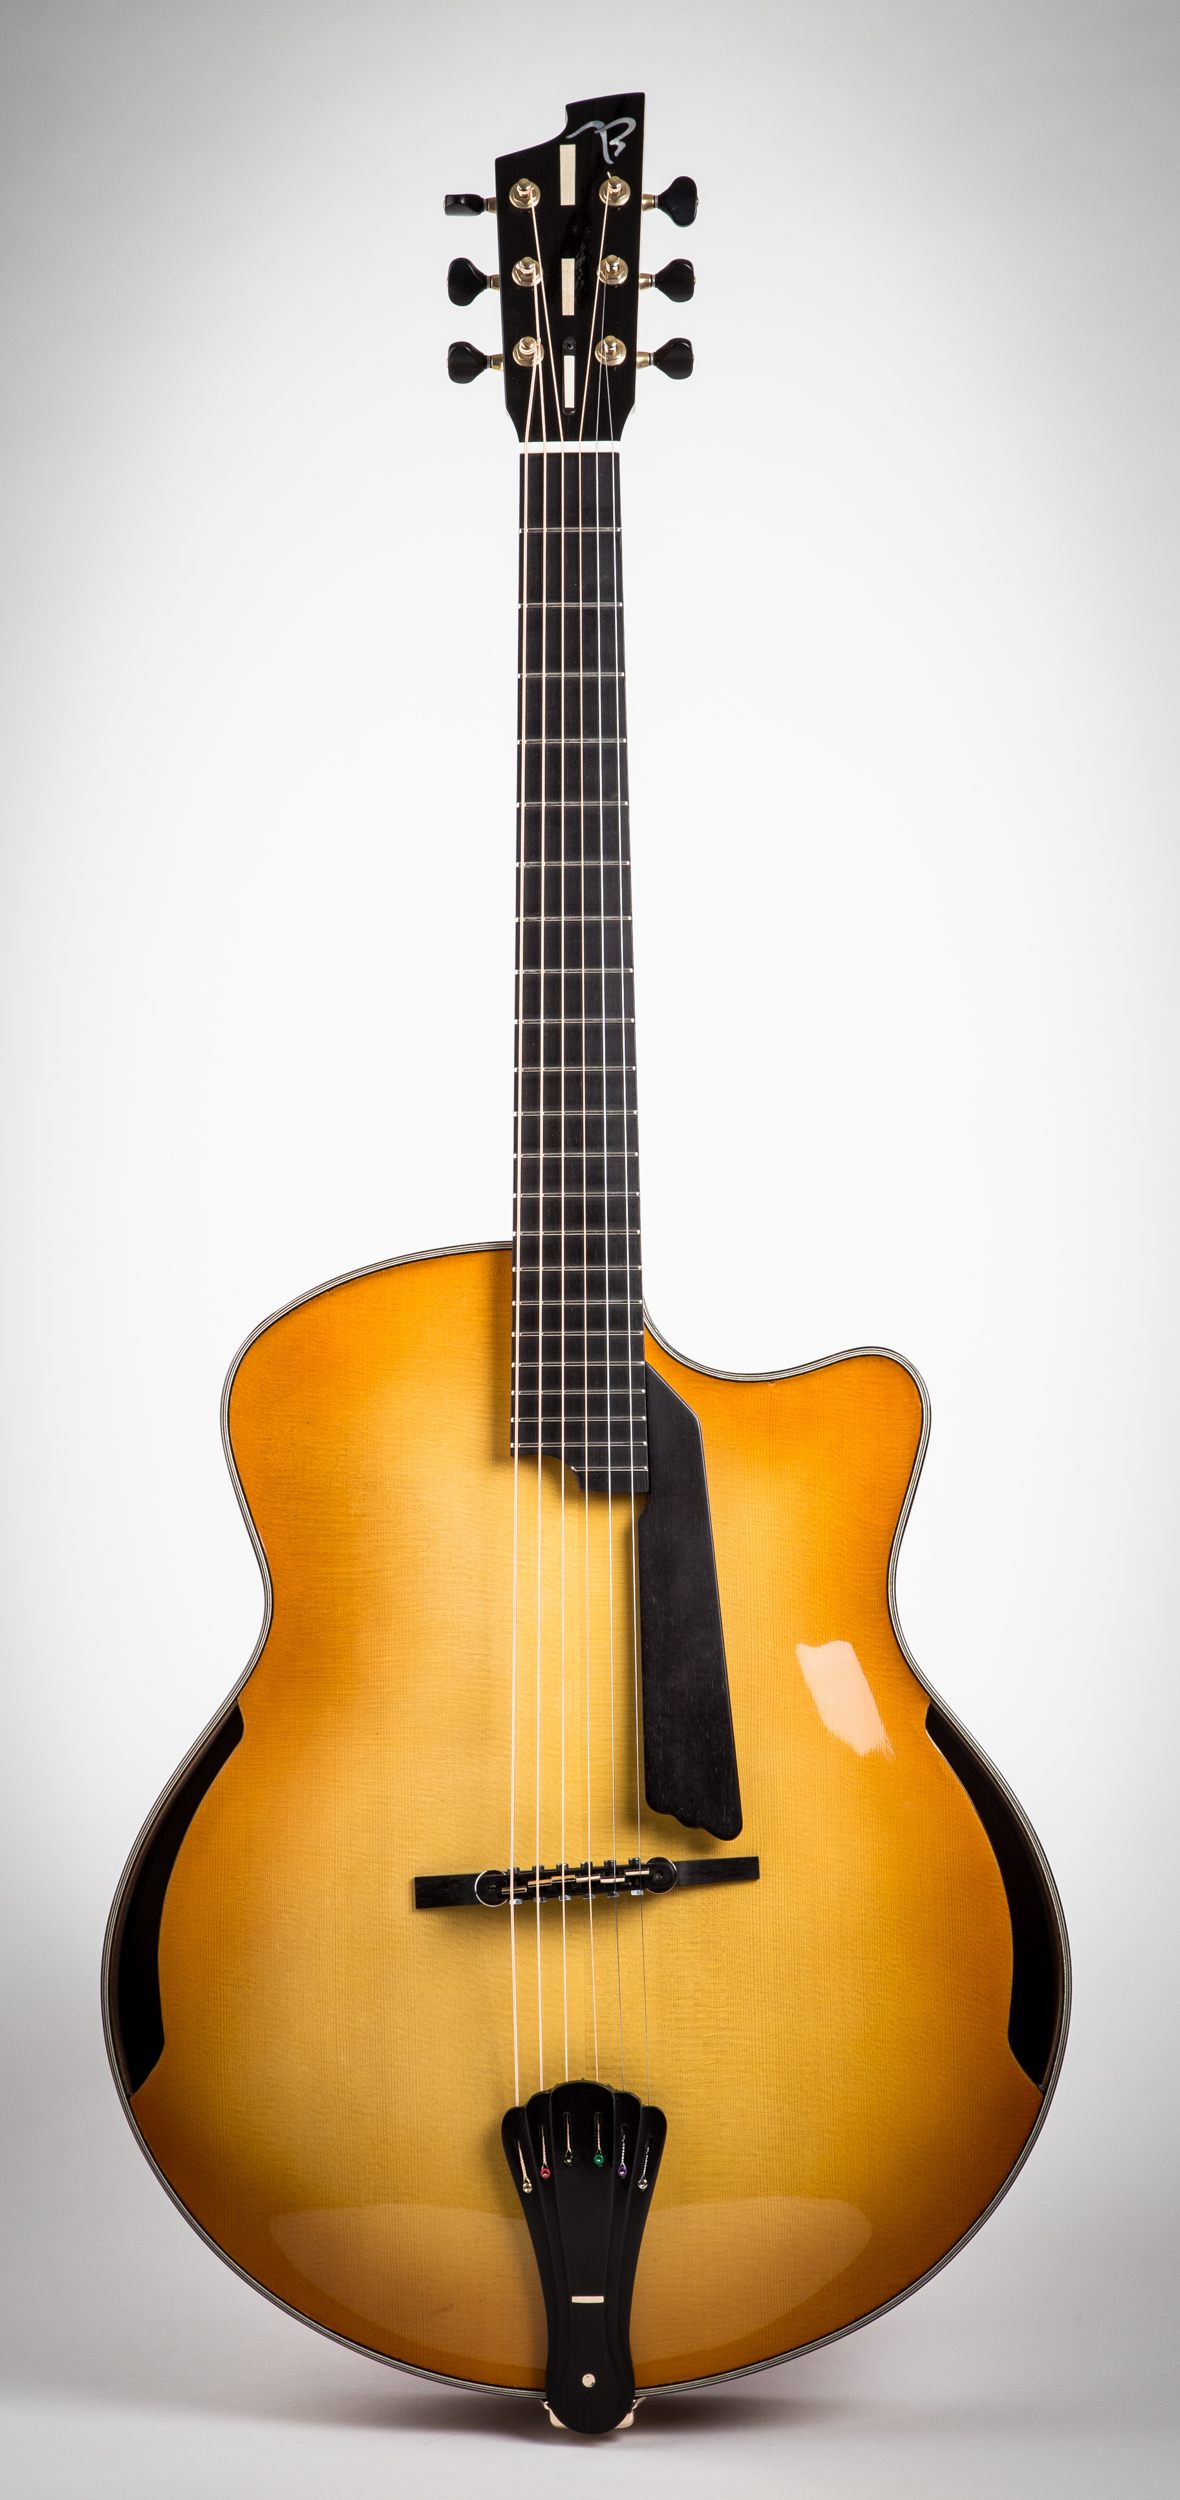 7A Arch-top Acoustic w/side-ports and art-deco bridge